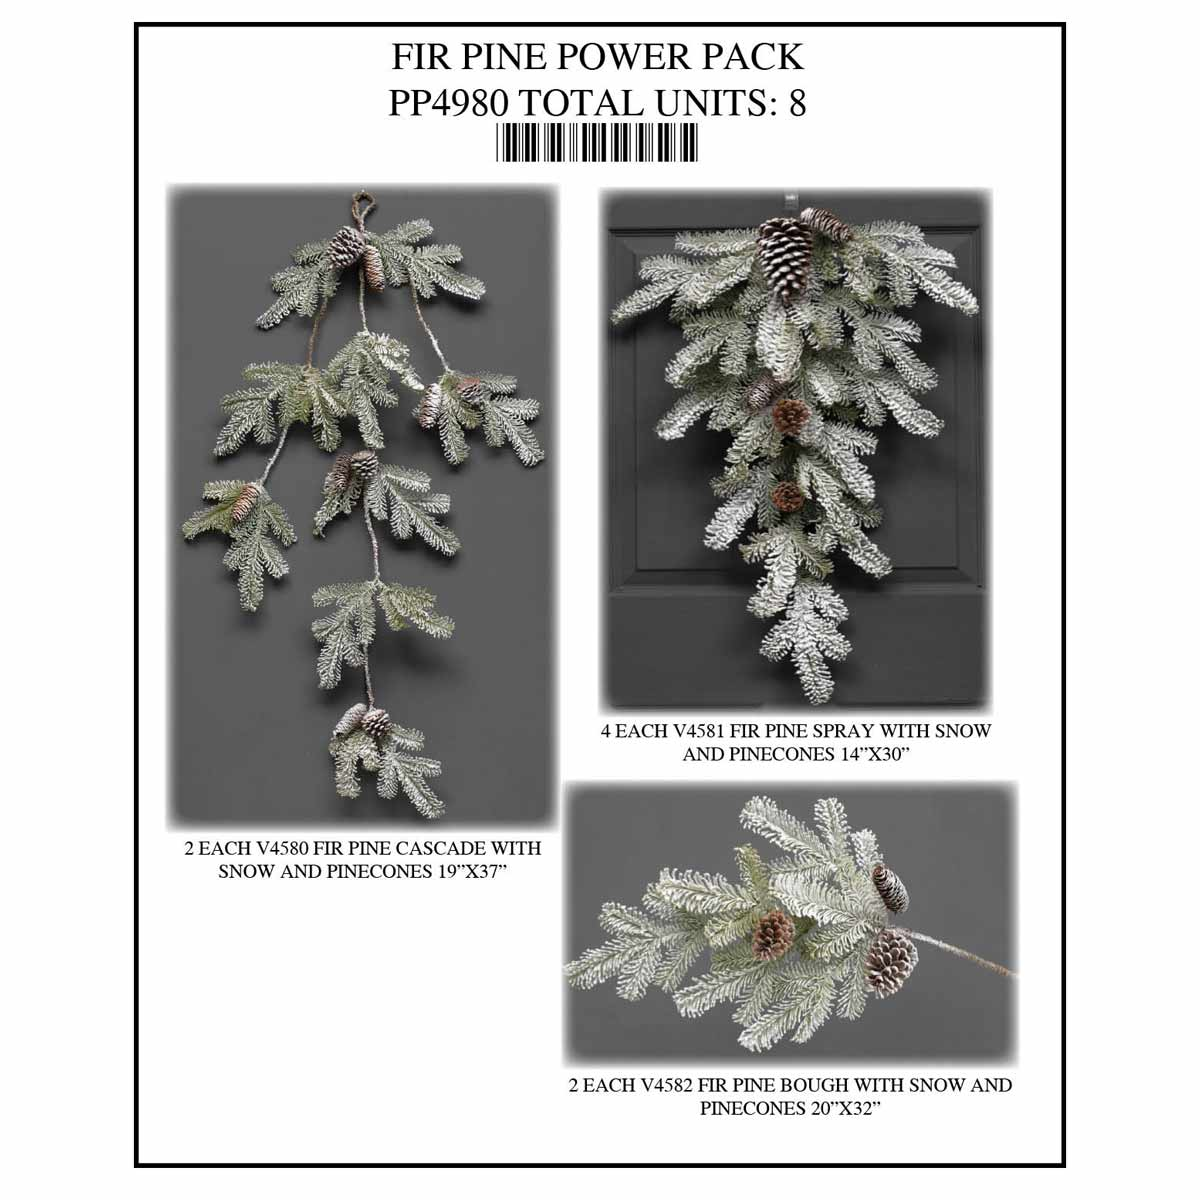 PINE FIR Power Pack 8 Units